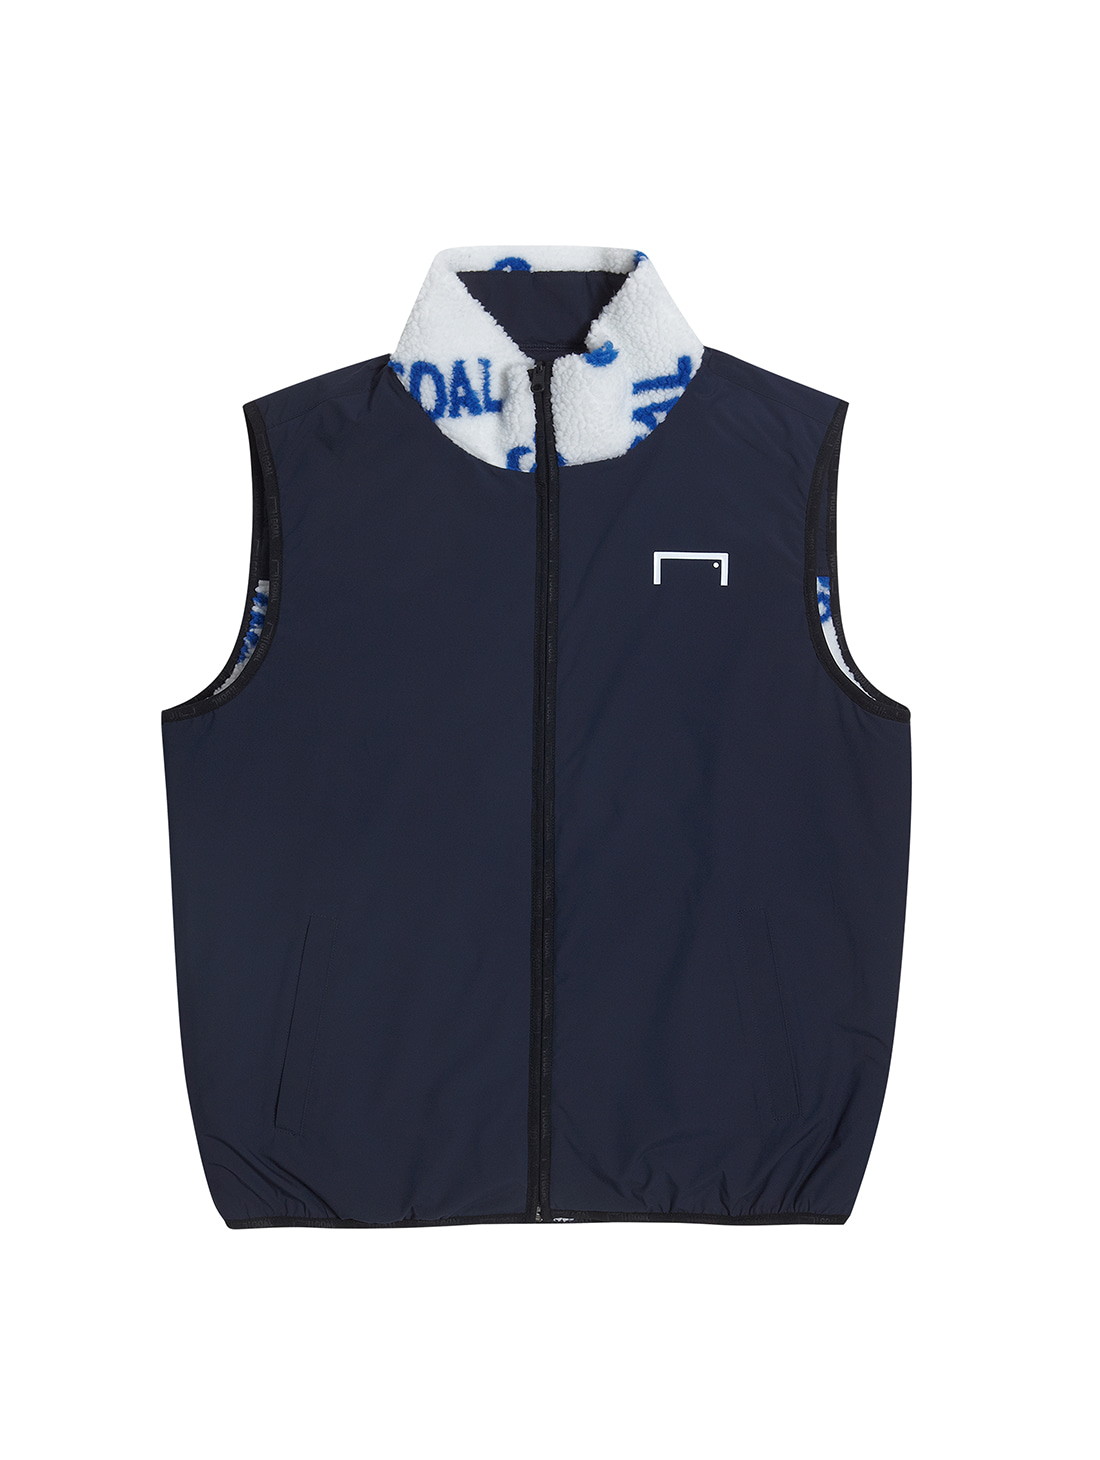 GOALSTUDIO REVERSIBLE FLEECE VEST - WHITE/NAVY